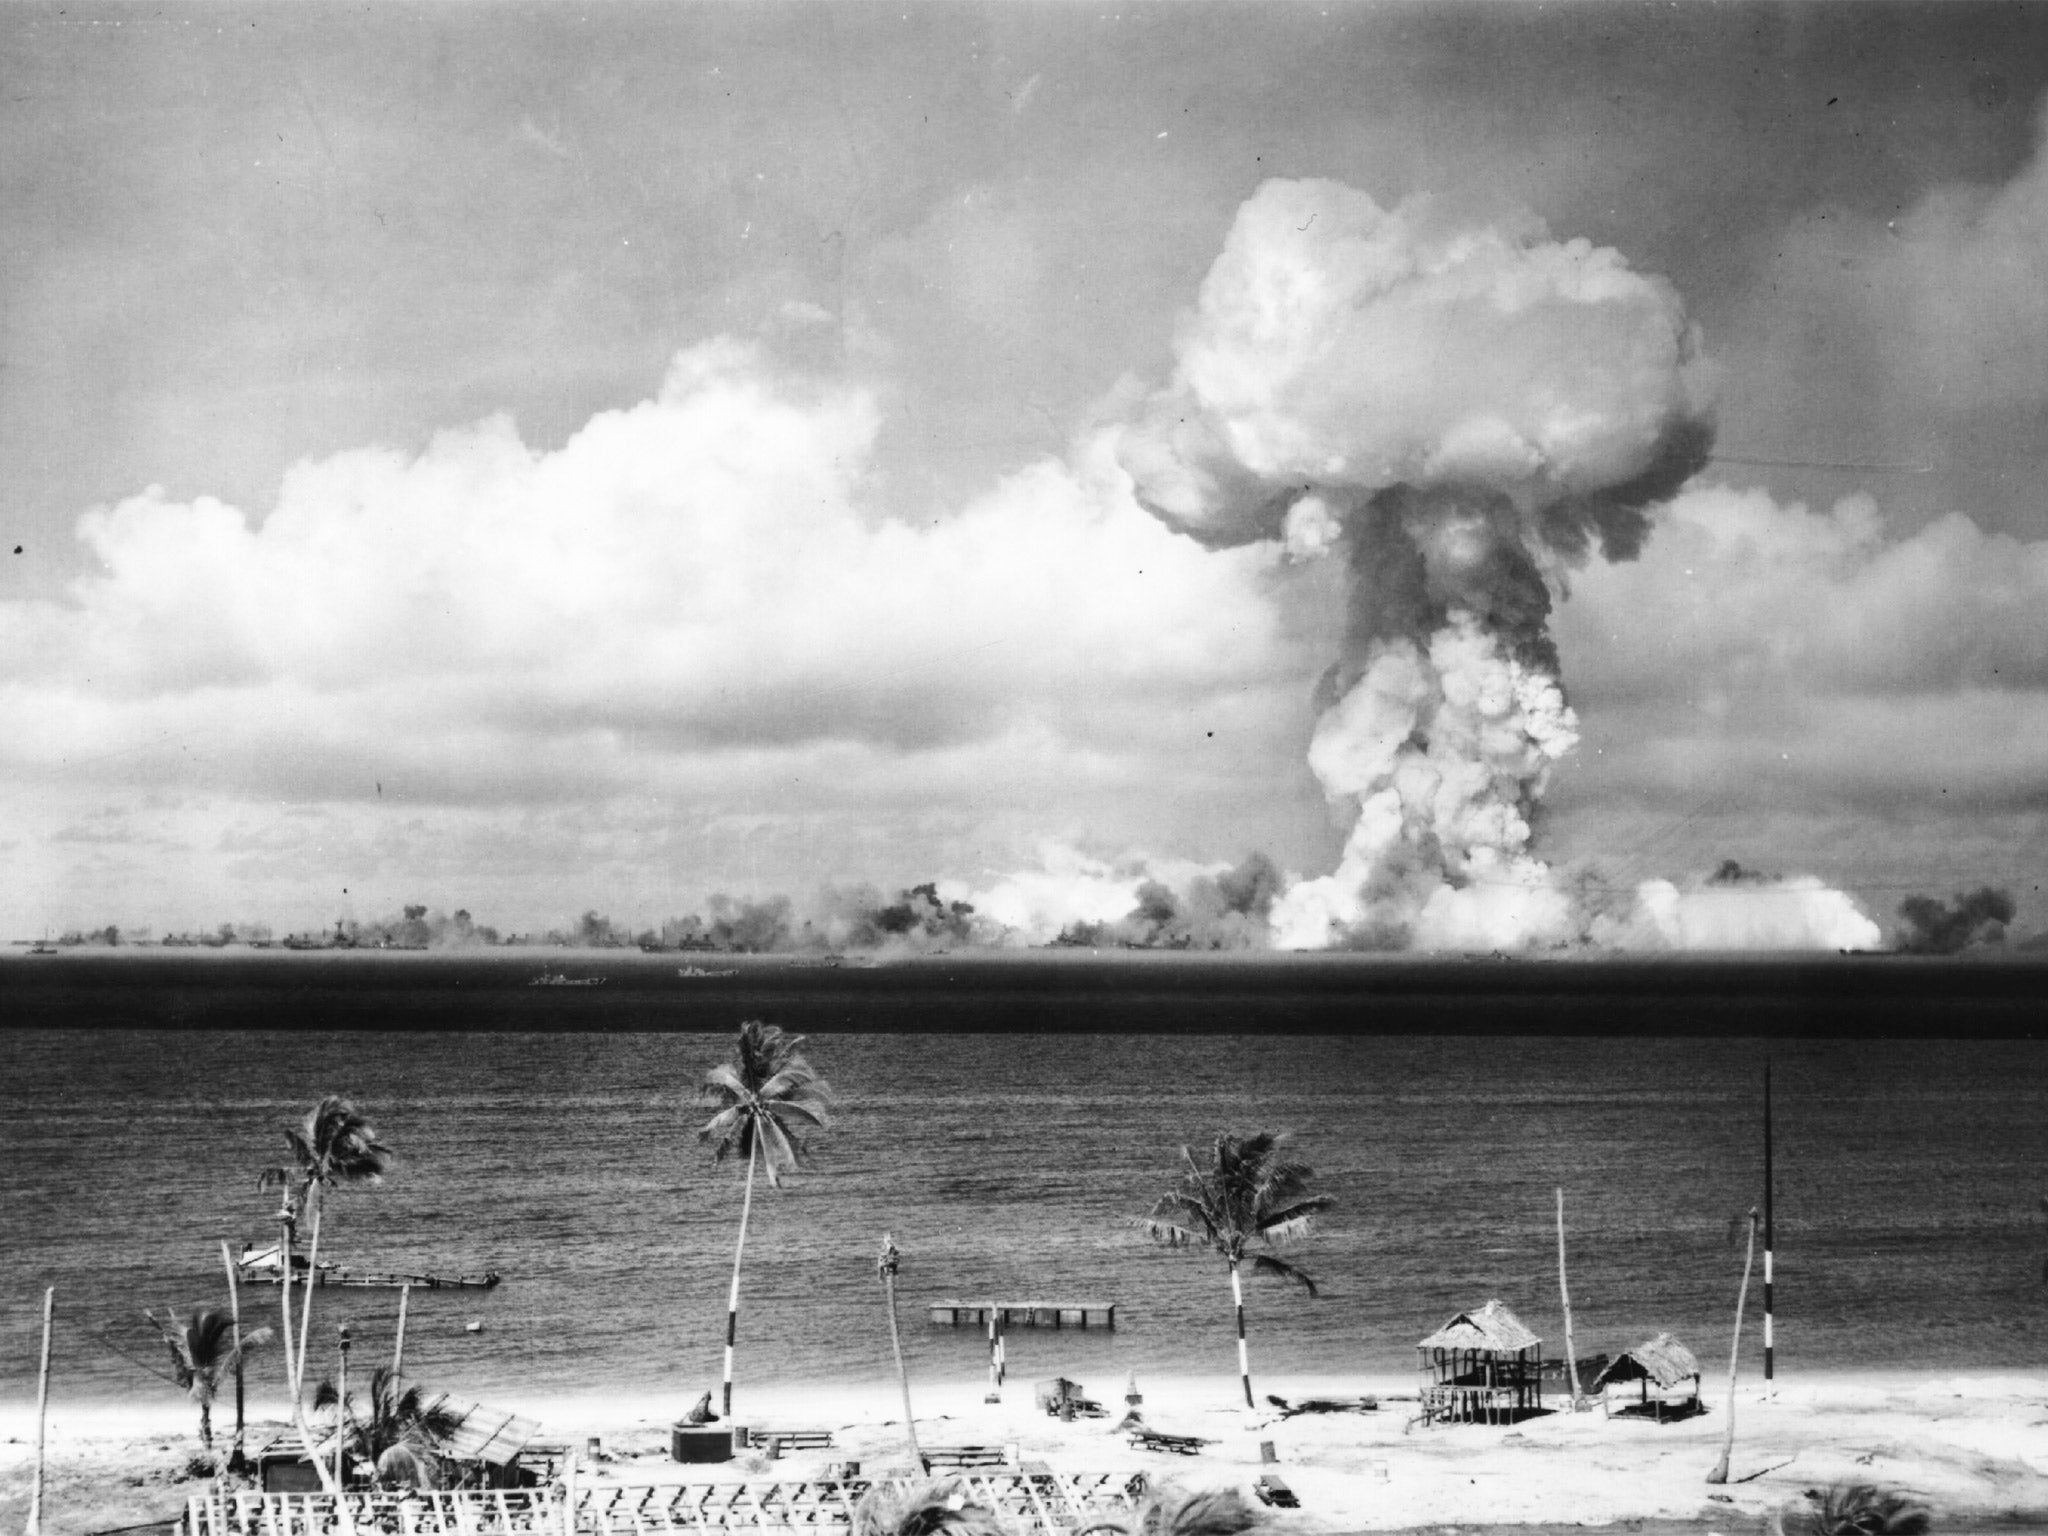 bikini marshall islands View images and find out more about in focus - the bikini atoll atomic bomb tests and the uss independence at getty images bikini atoll in the marshall islands.